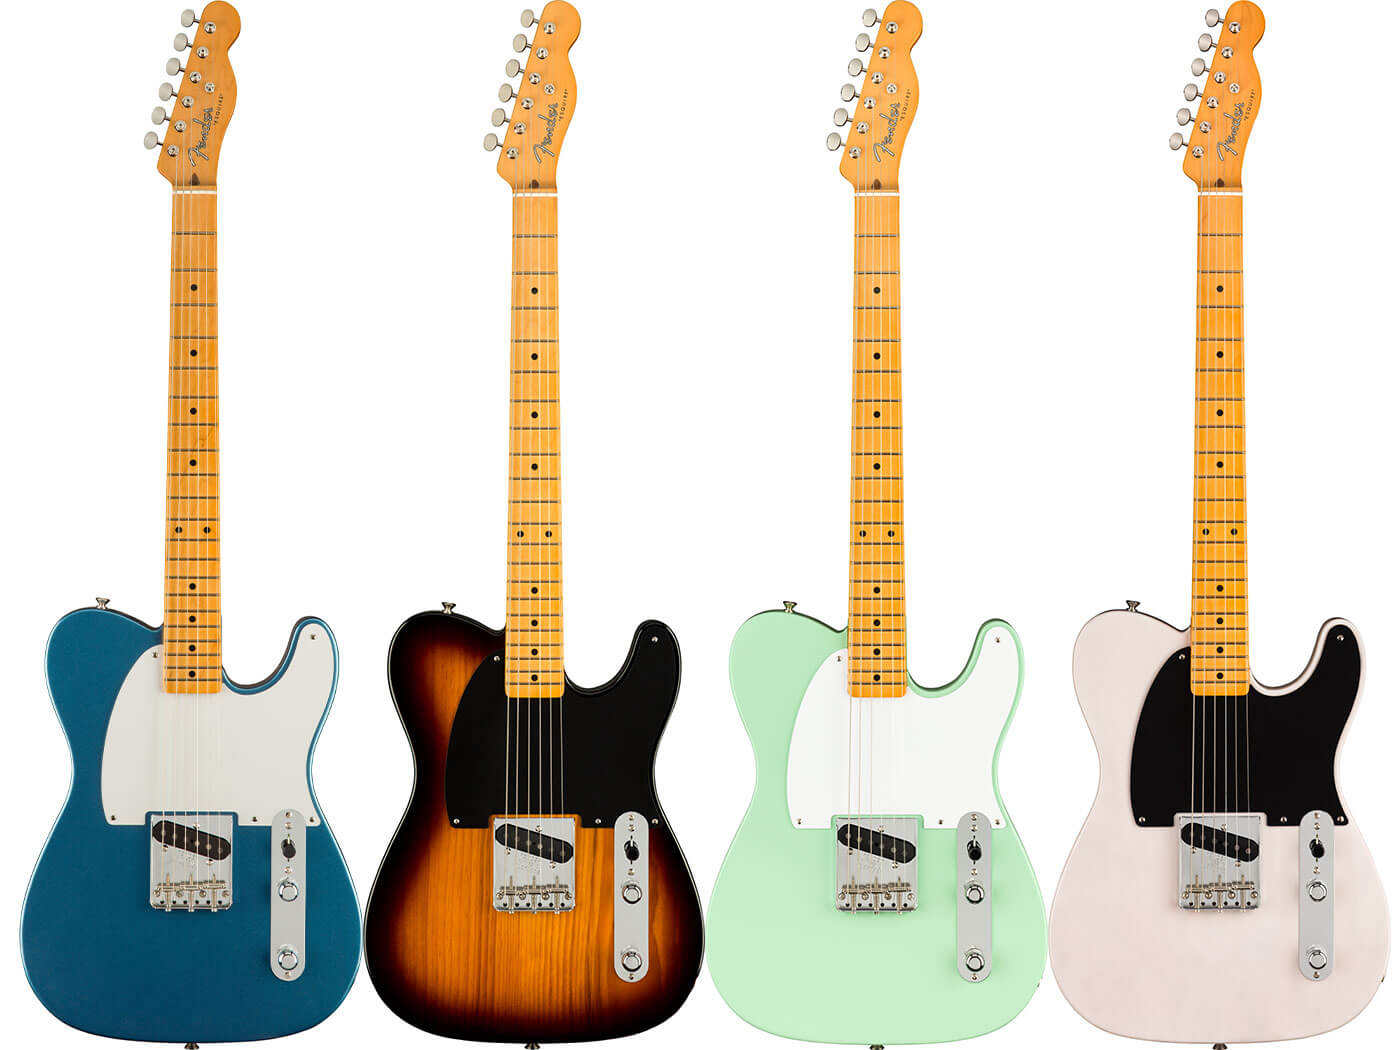 All of the different finishes for the 70th Anniversary Esquire